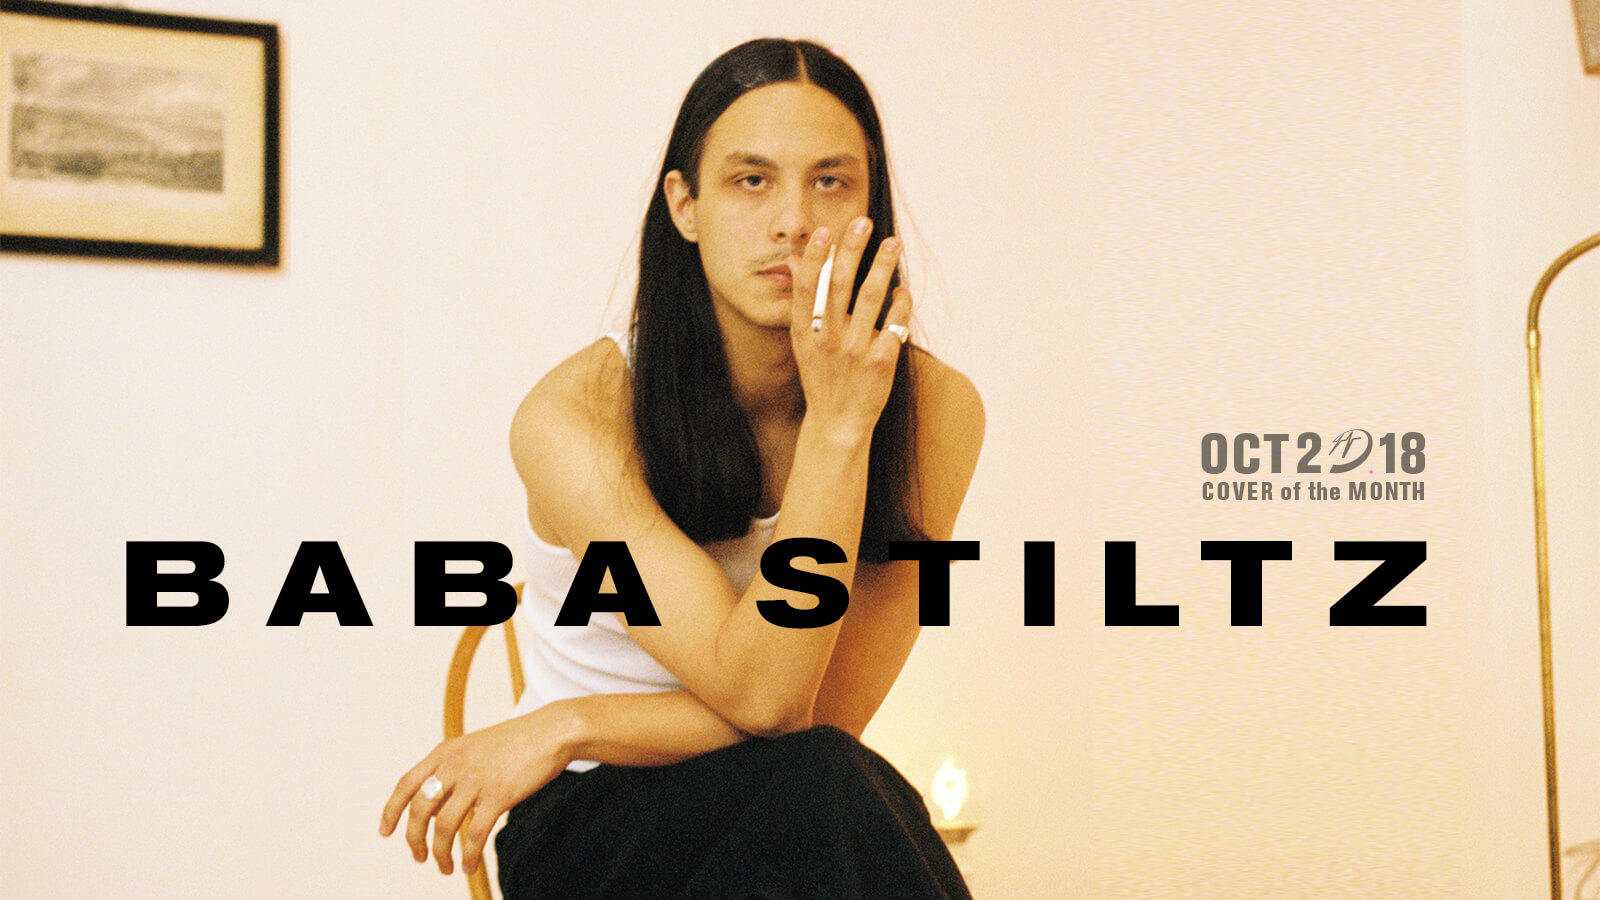 Cover of the Month: Baba Stiltz